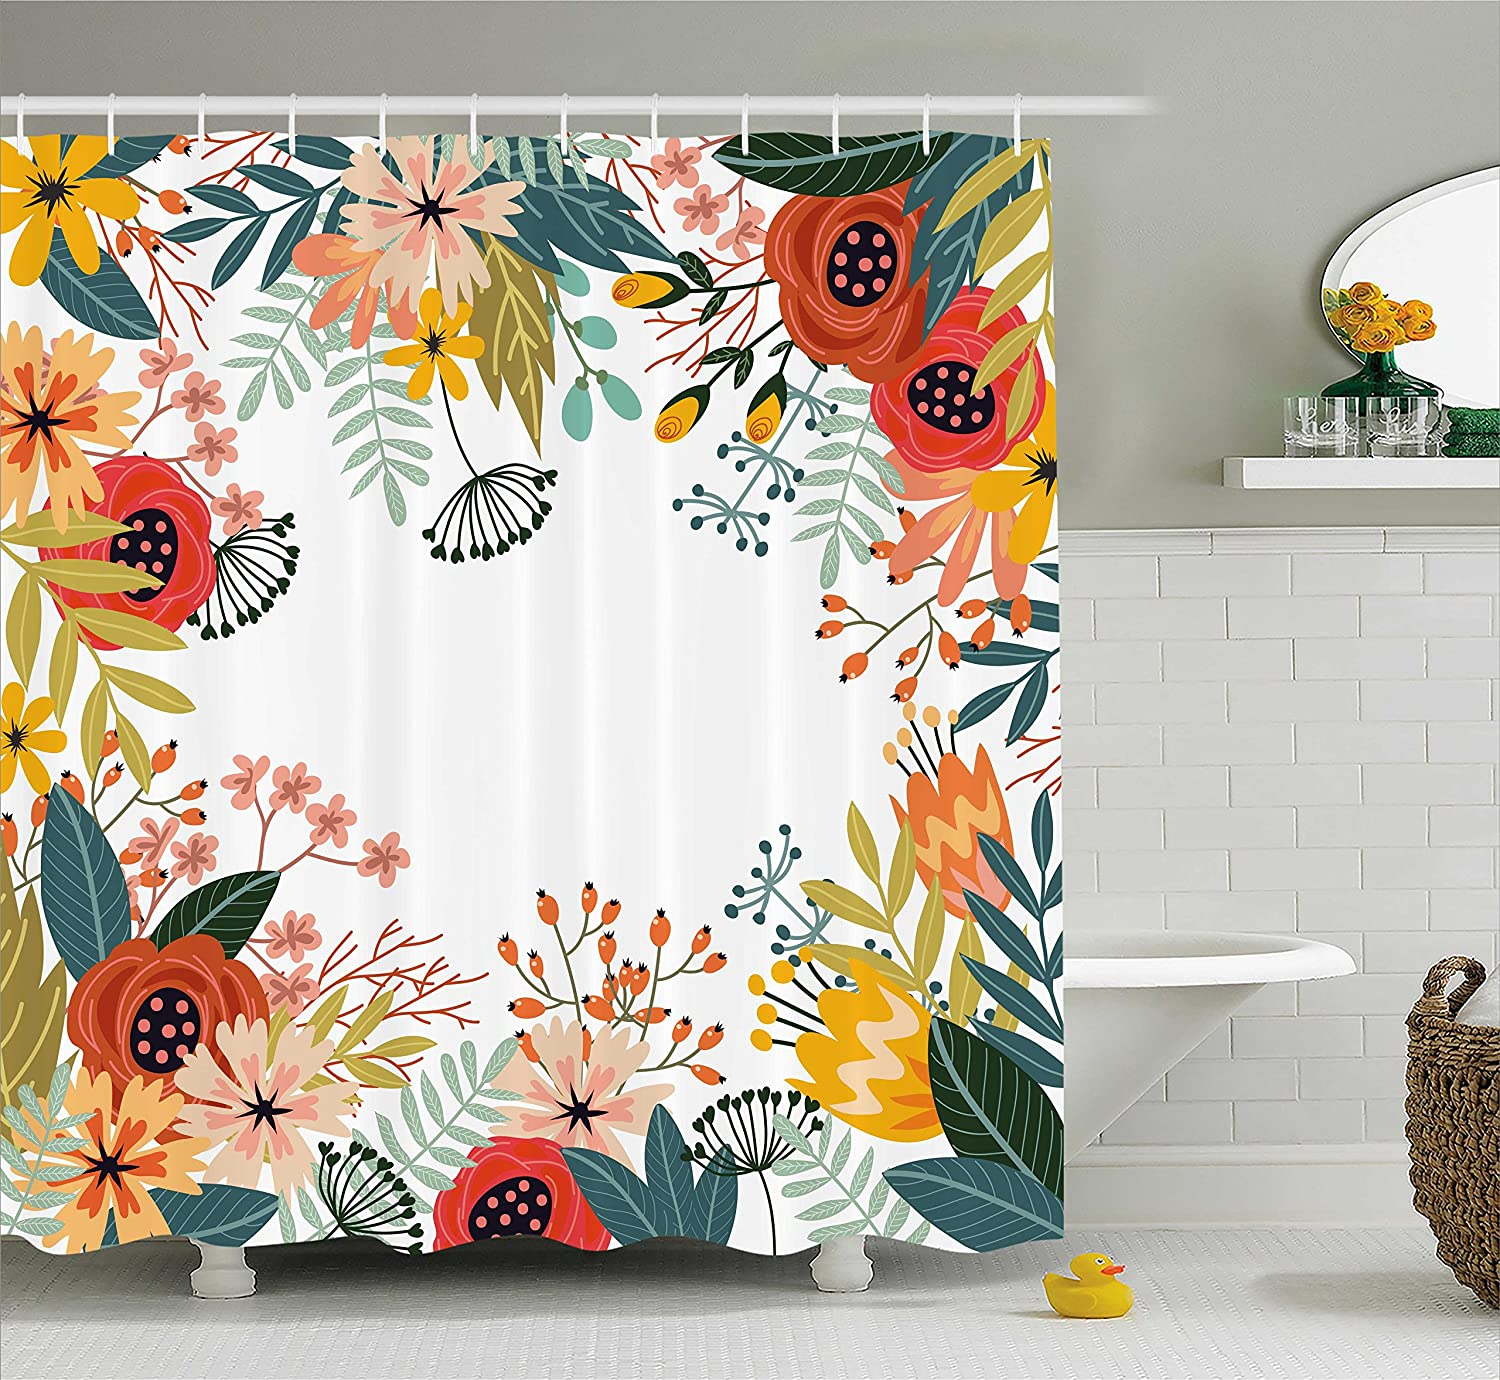 Ambesonne Floral Shower Curtain By Vintage Exotic Summer Flowers Botanical Natural Framework Colorful Art Illustration Fabric Bathroom Decor Set With